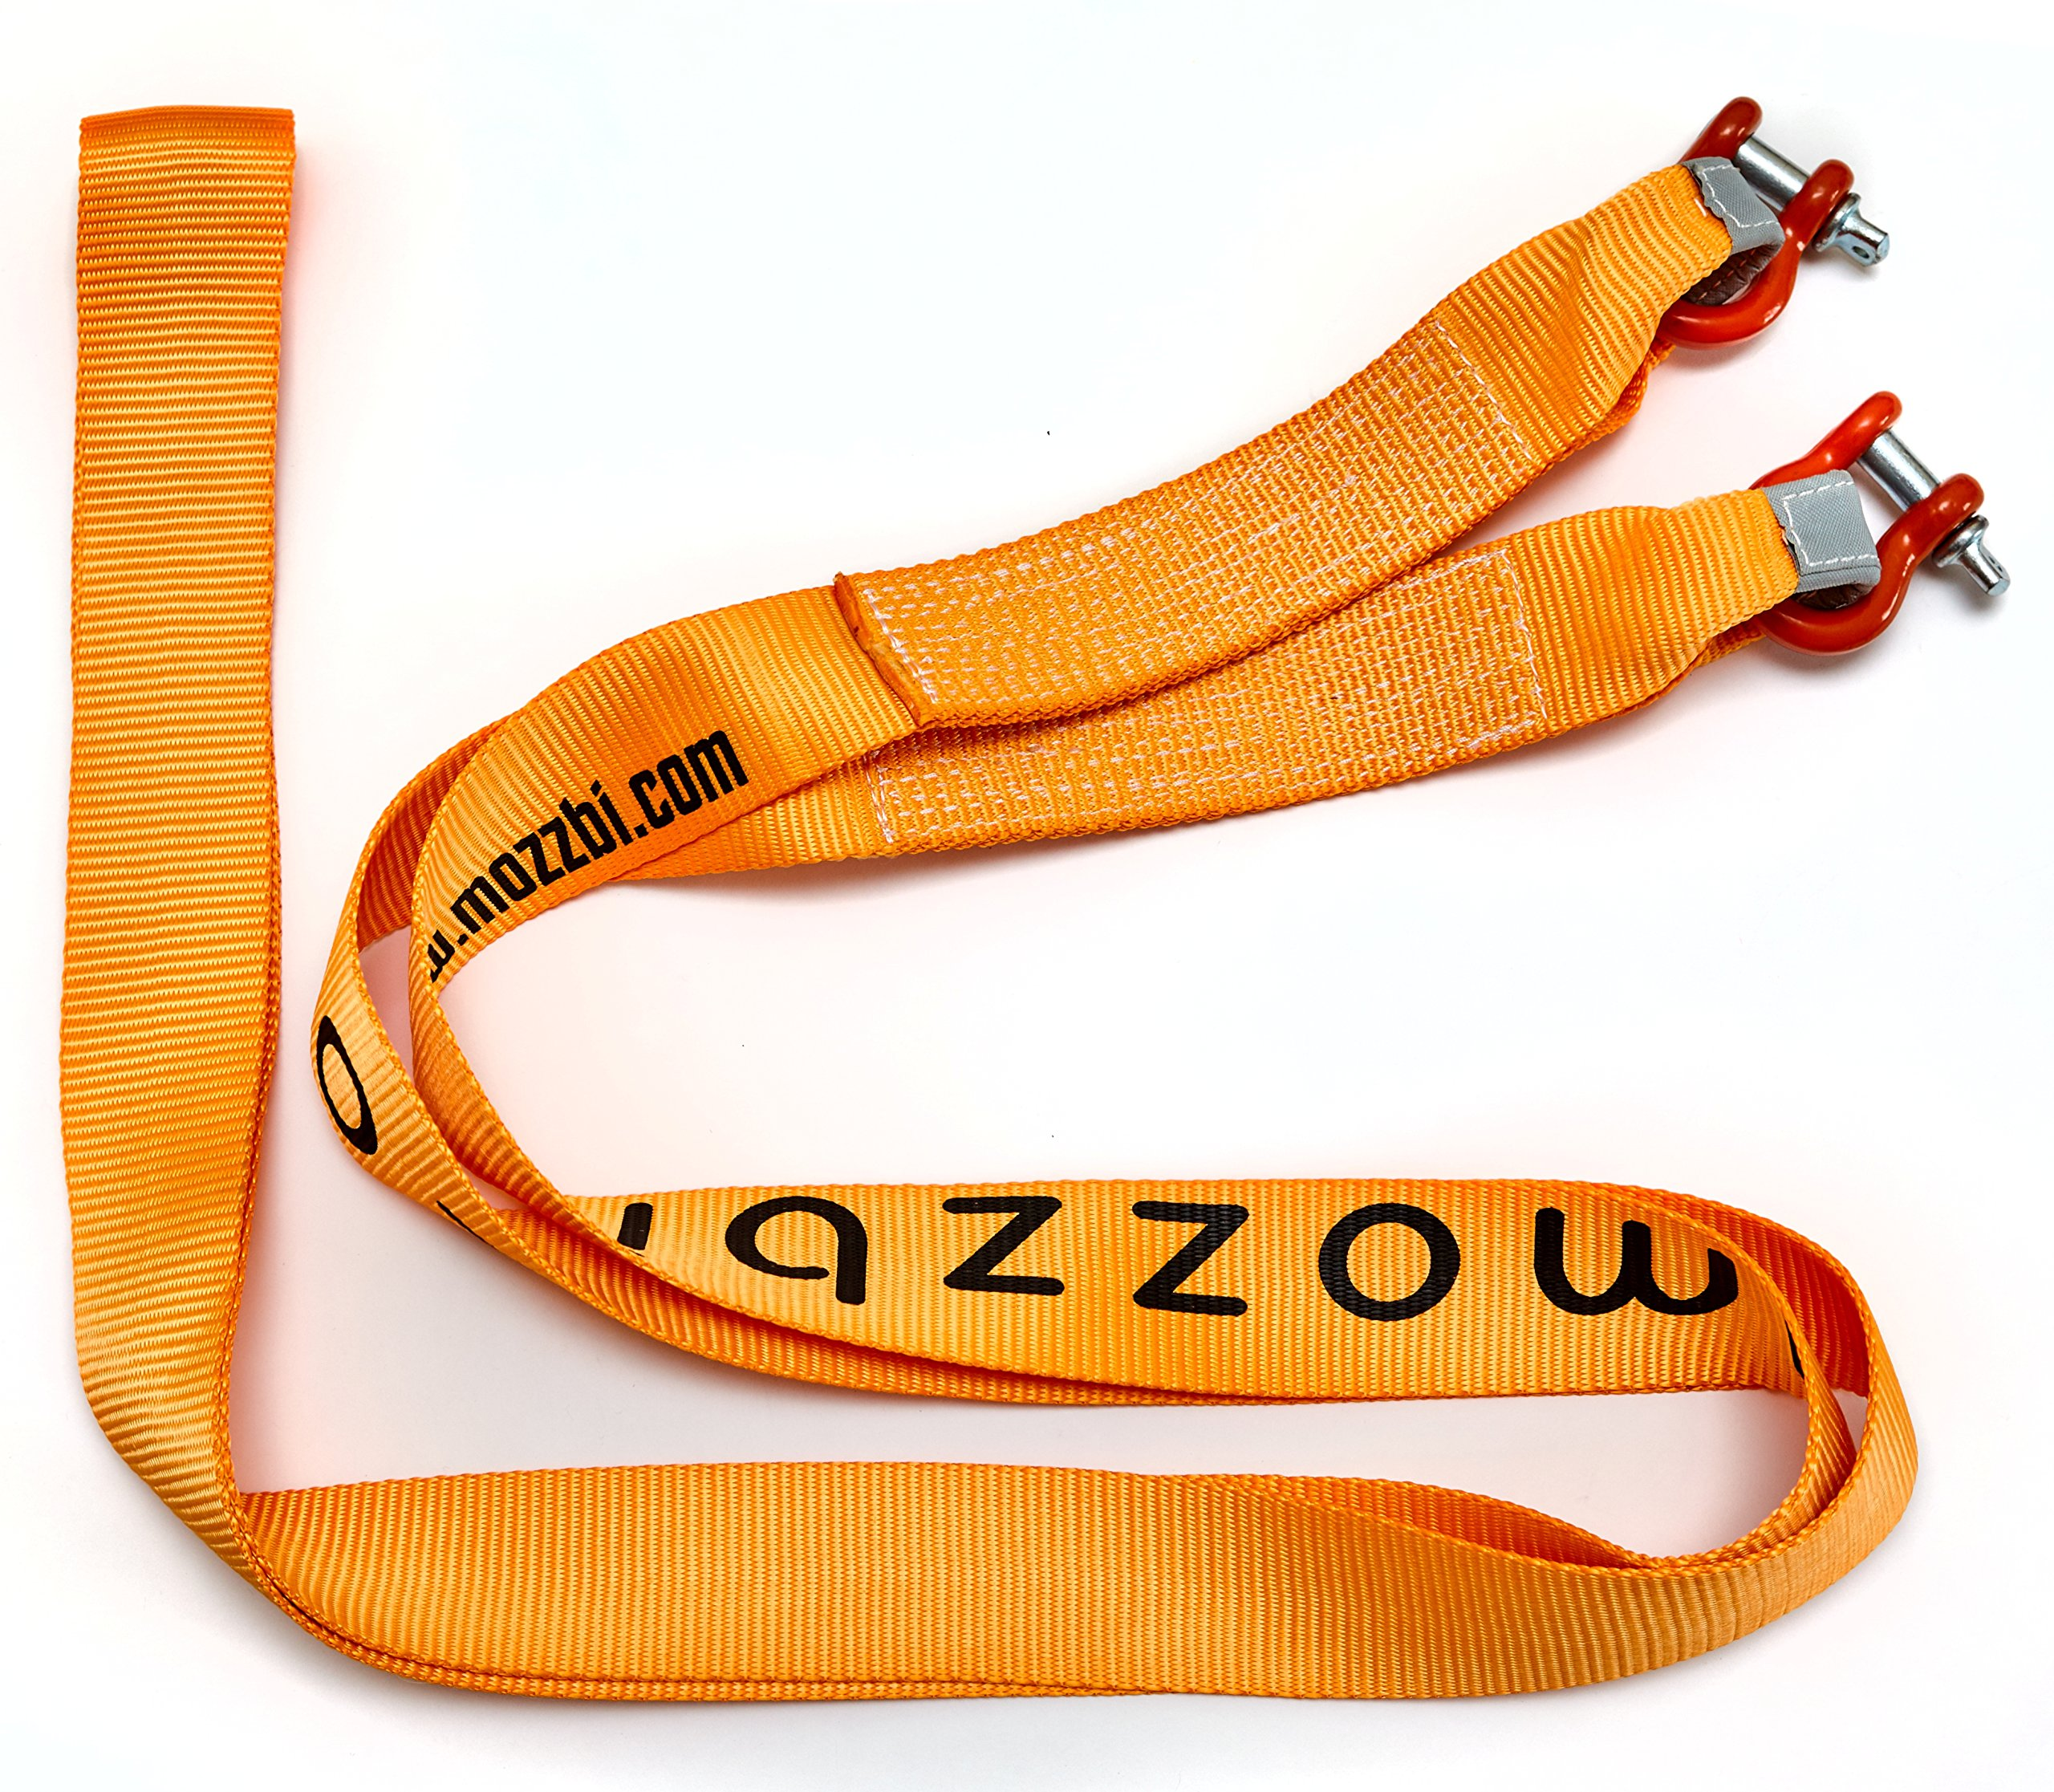 Mozzbi Recovery Towing Strap 3'' with D-Ring Shackle and Loops End Heavy Duty 20000 lbs, 5M Long by Mozzbi